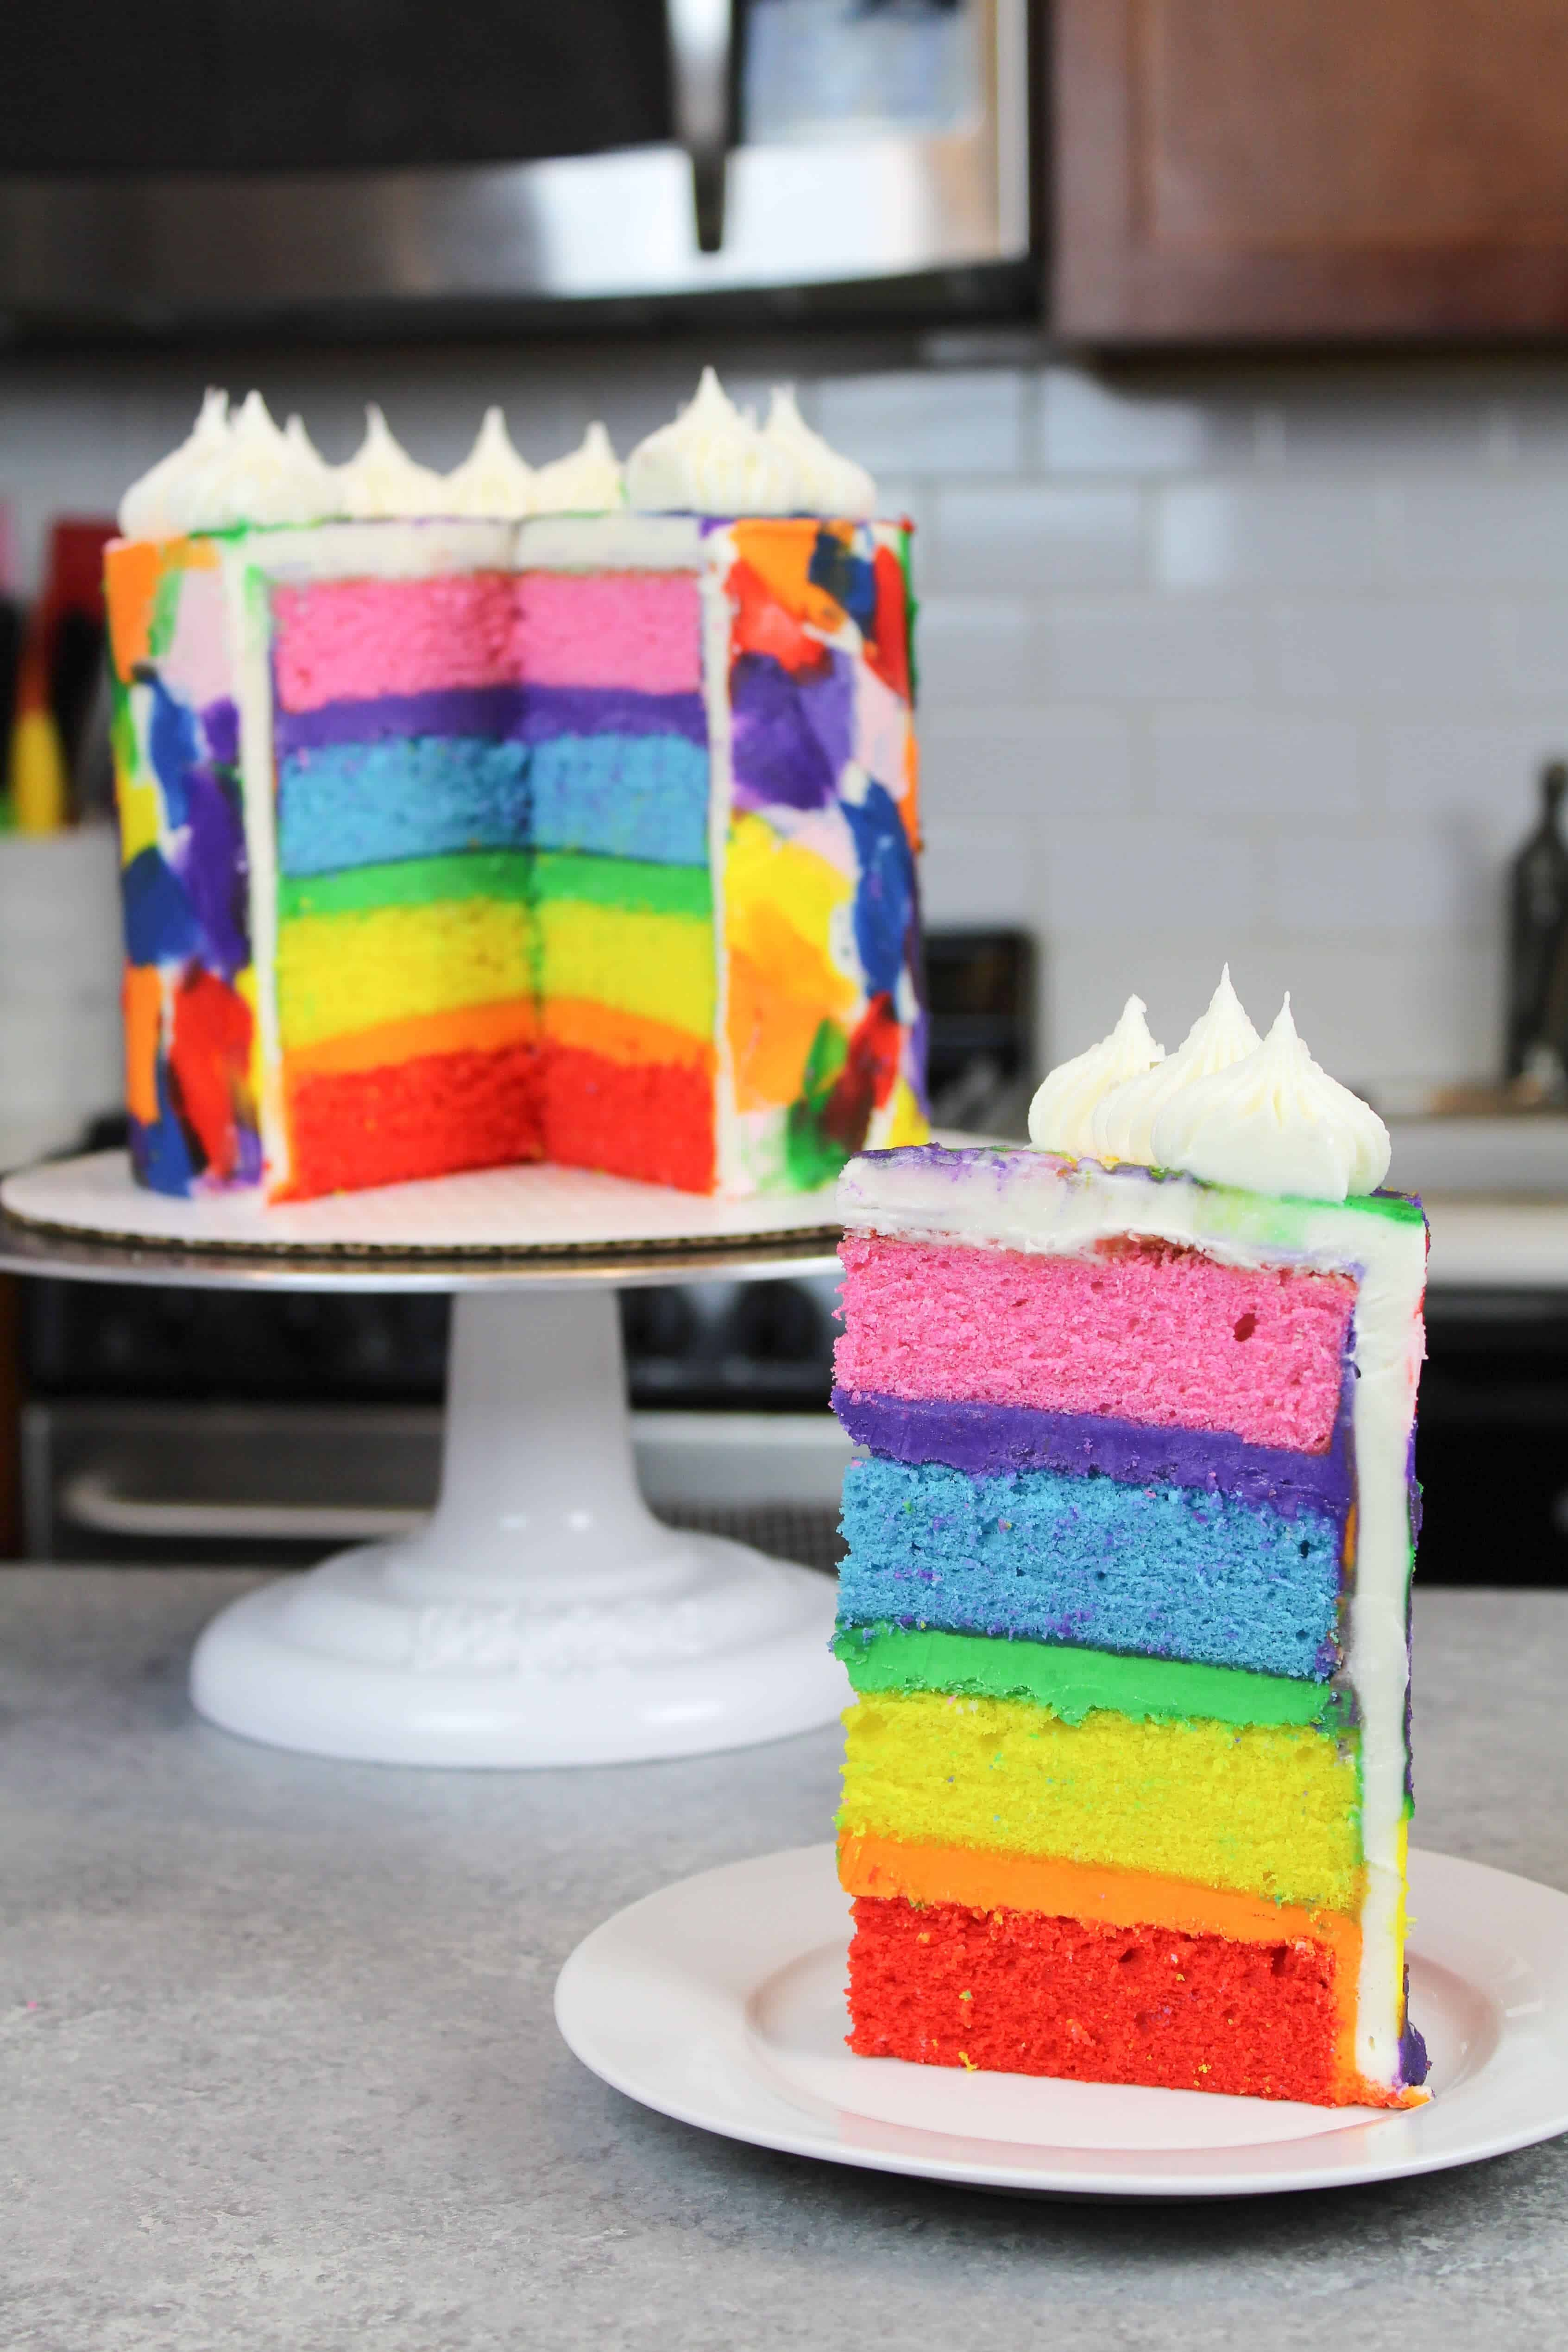 Rainbow Cake Recipe Made With 4 Cake Layers Chelsweets